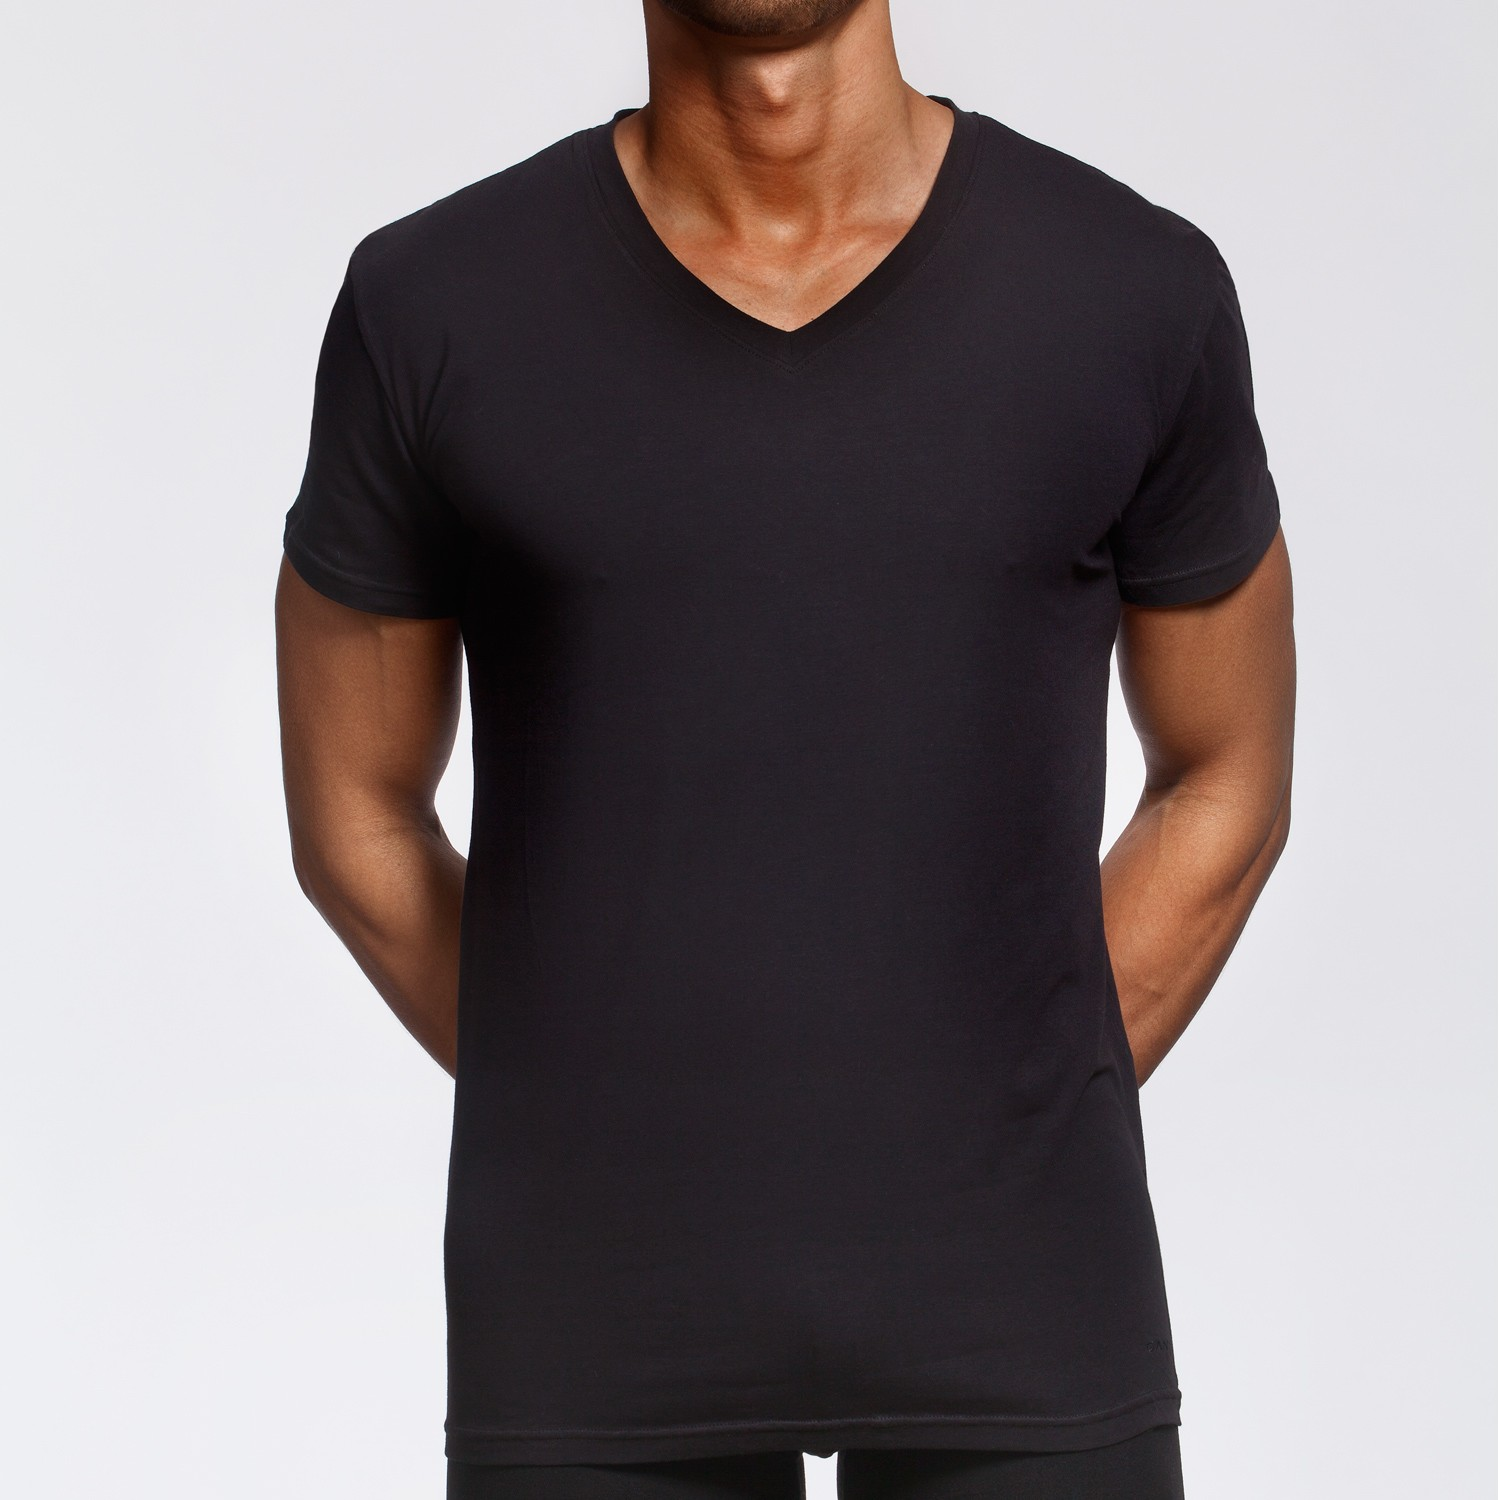 Gant premium basic cs t shirt v neck black t shirts for V neck black t shirt